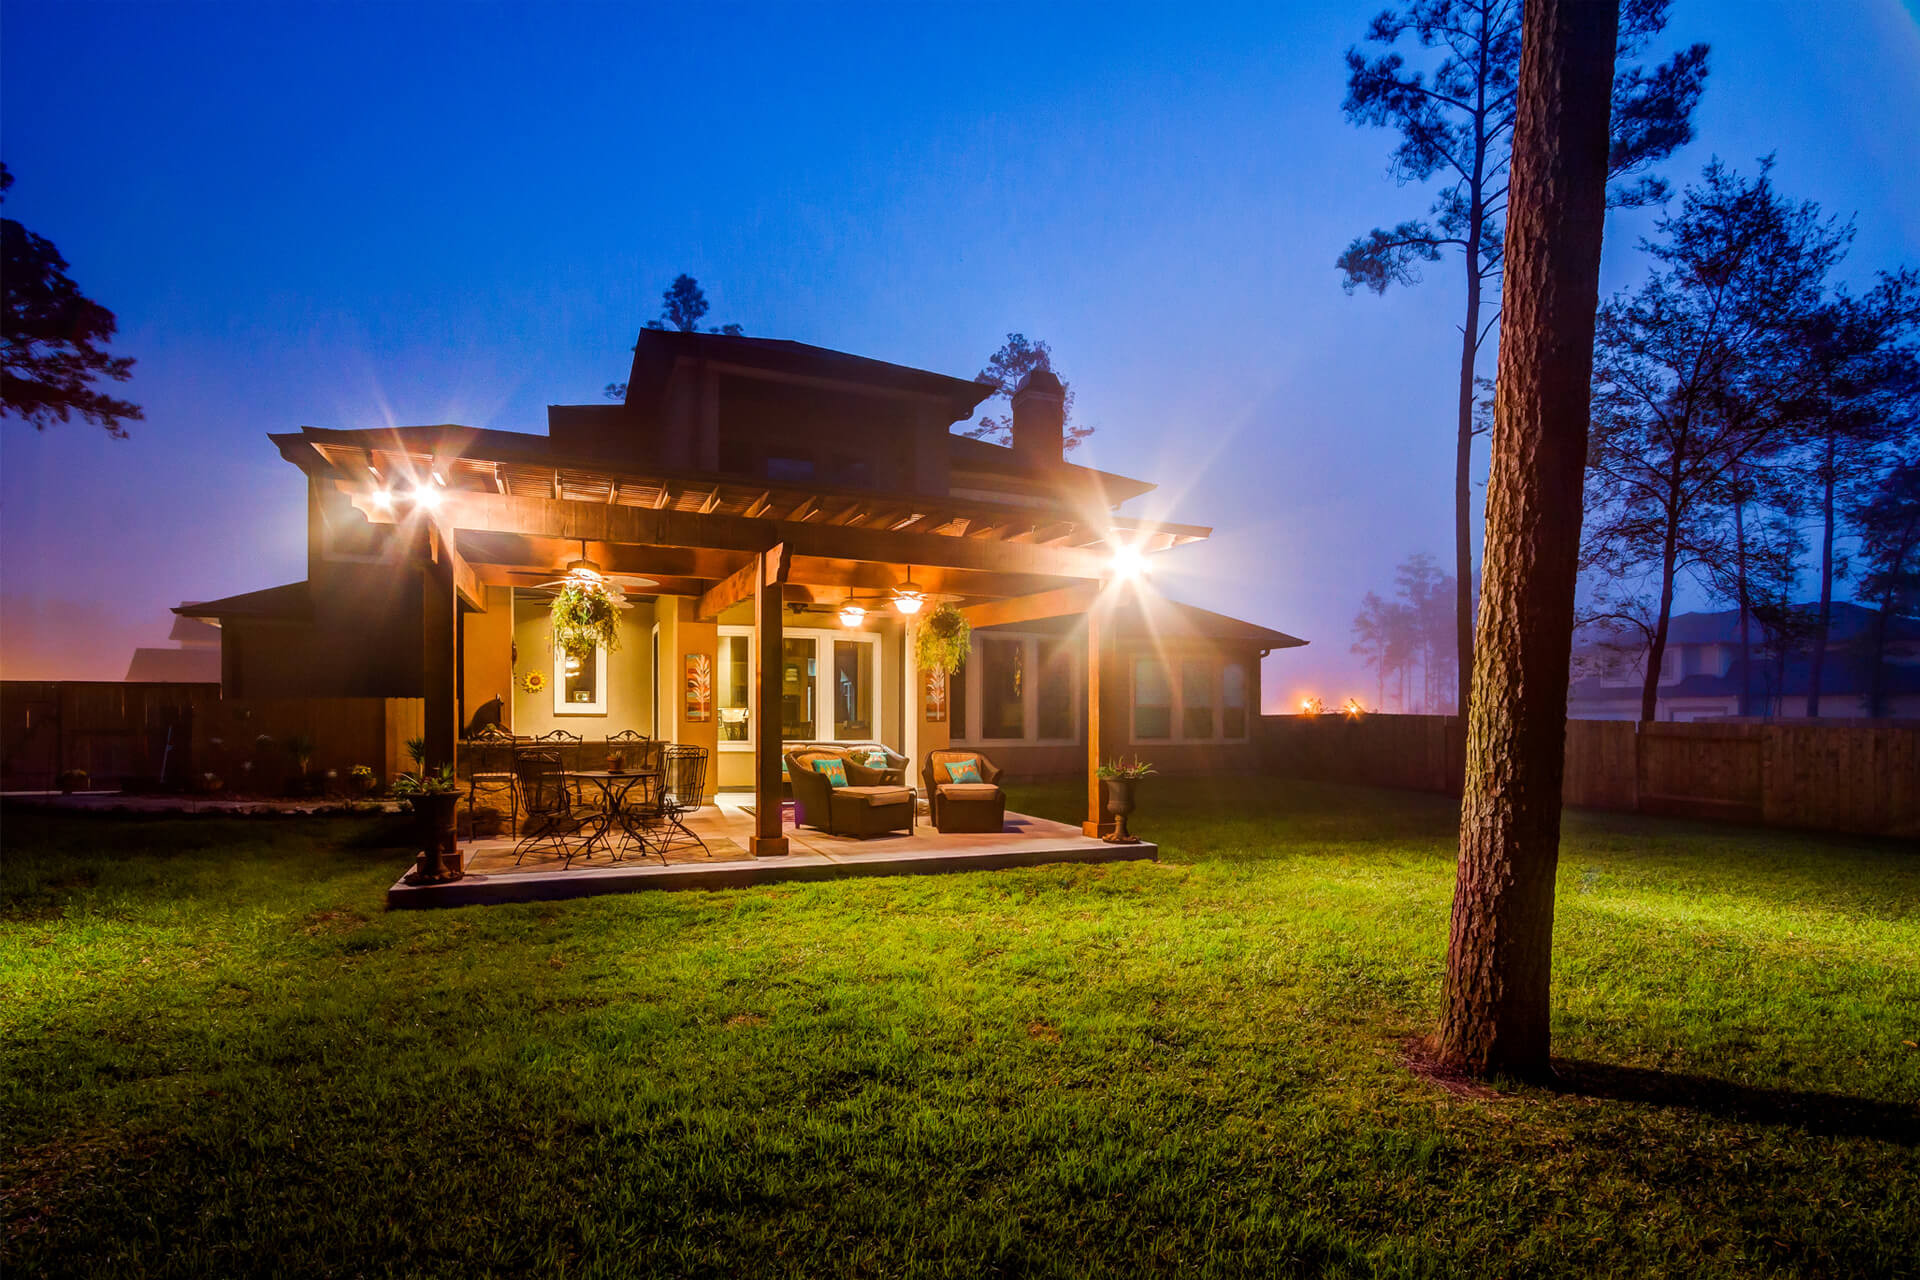 The Crescent Oaks - Custom Outdoor Pergola and custom Kitchen in The Woodlands, Texas